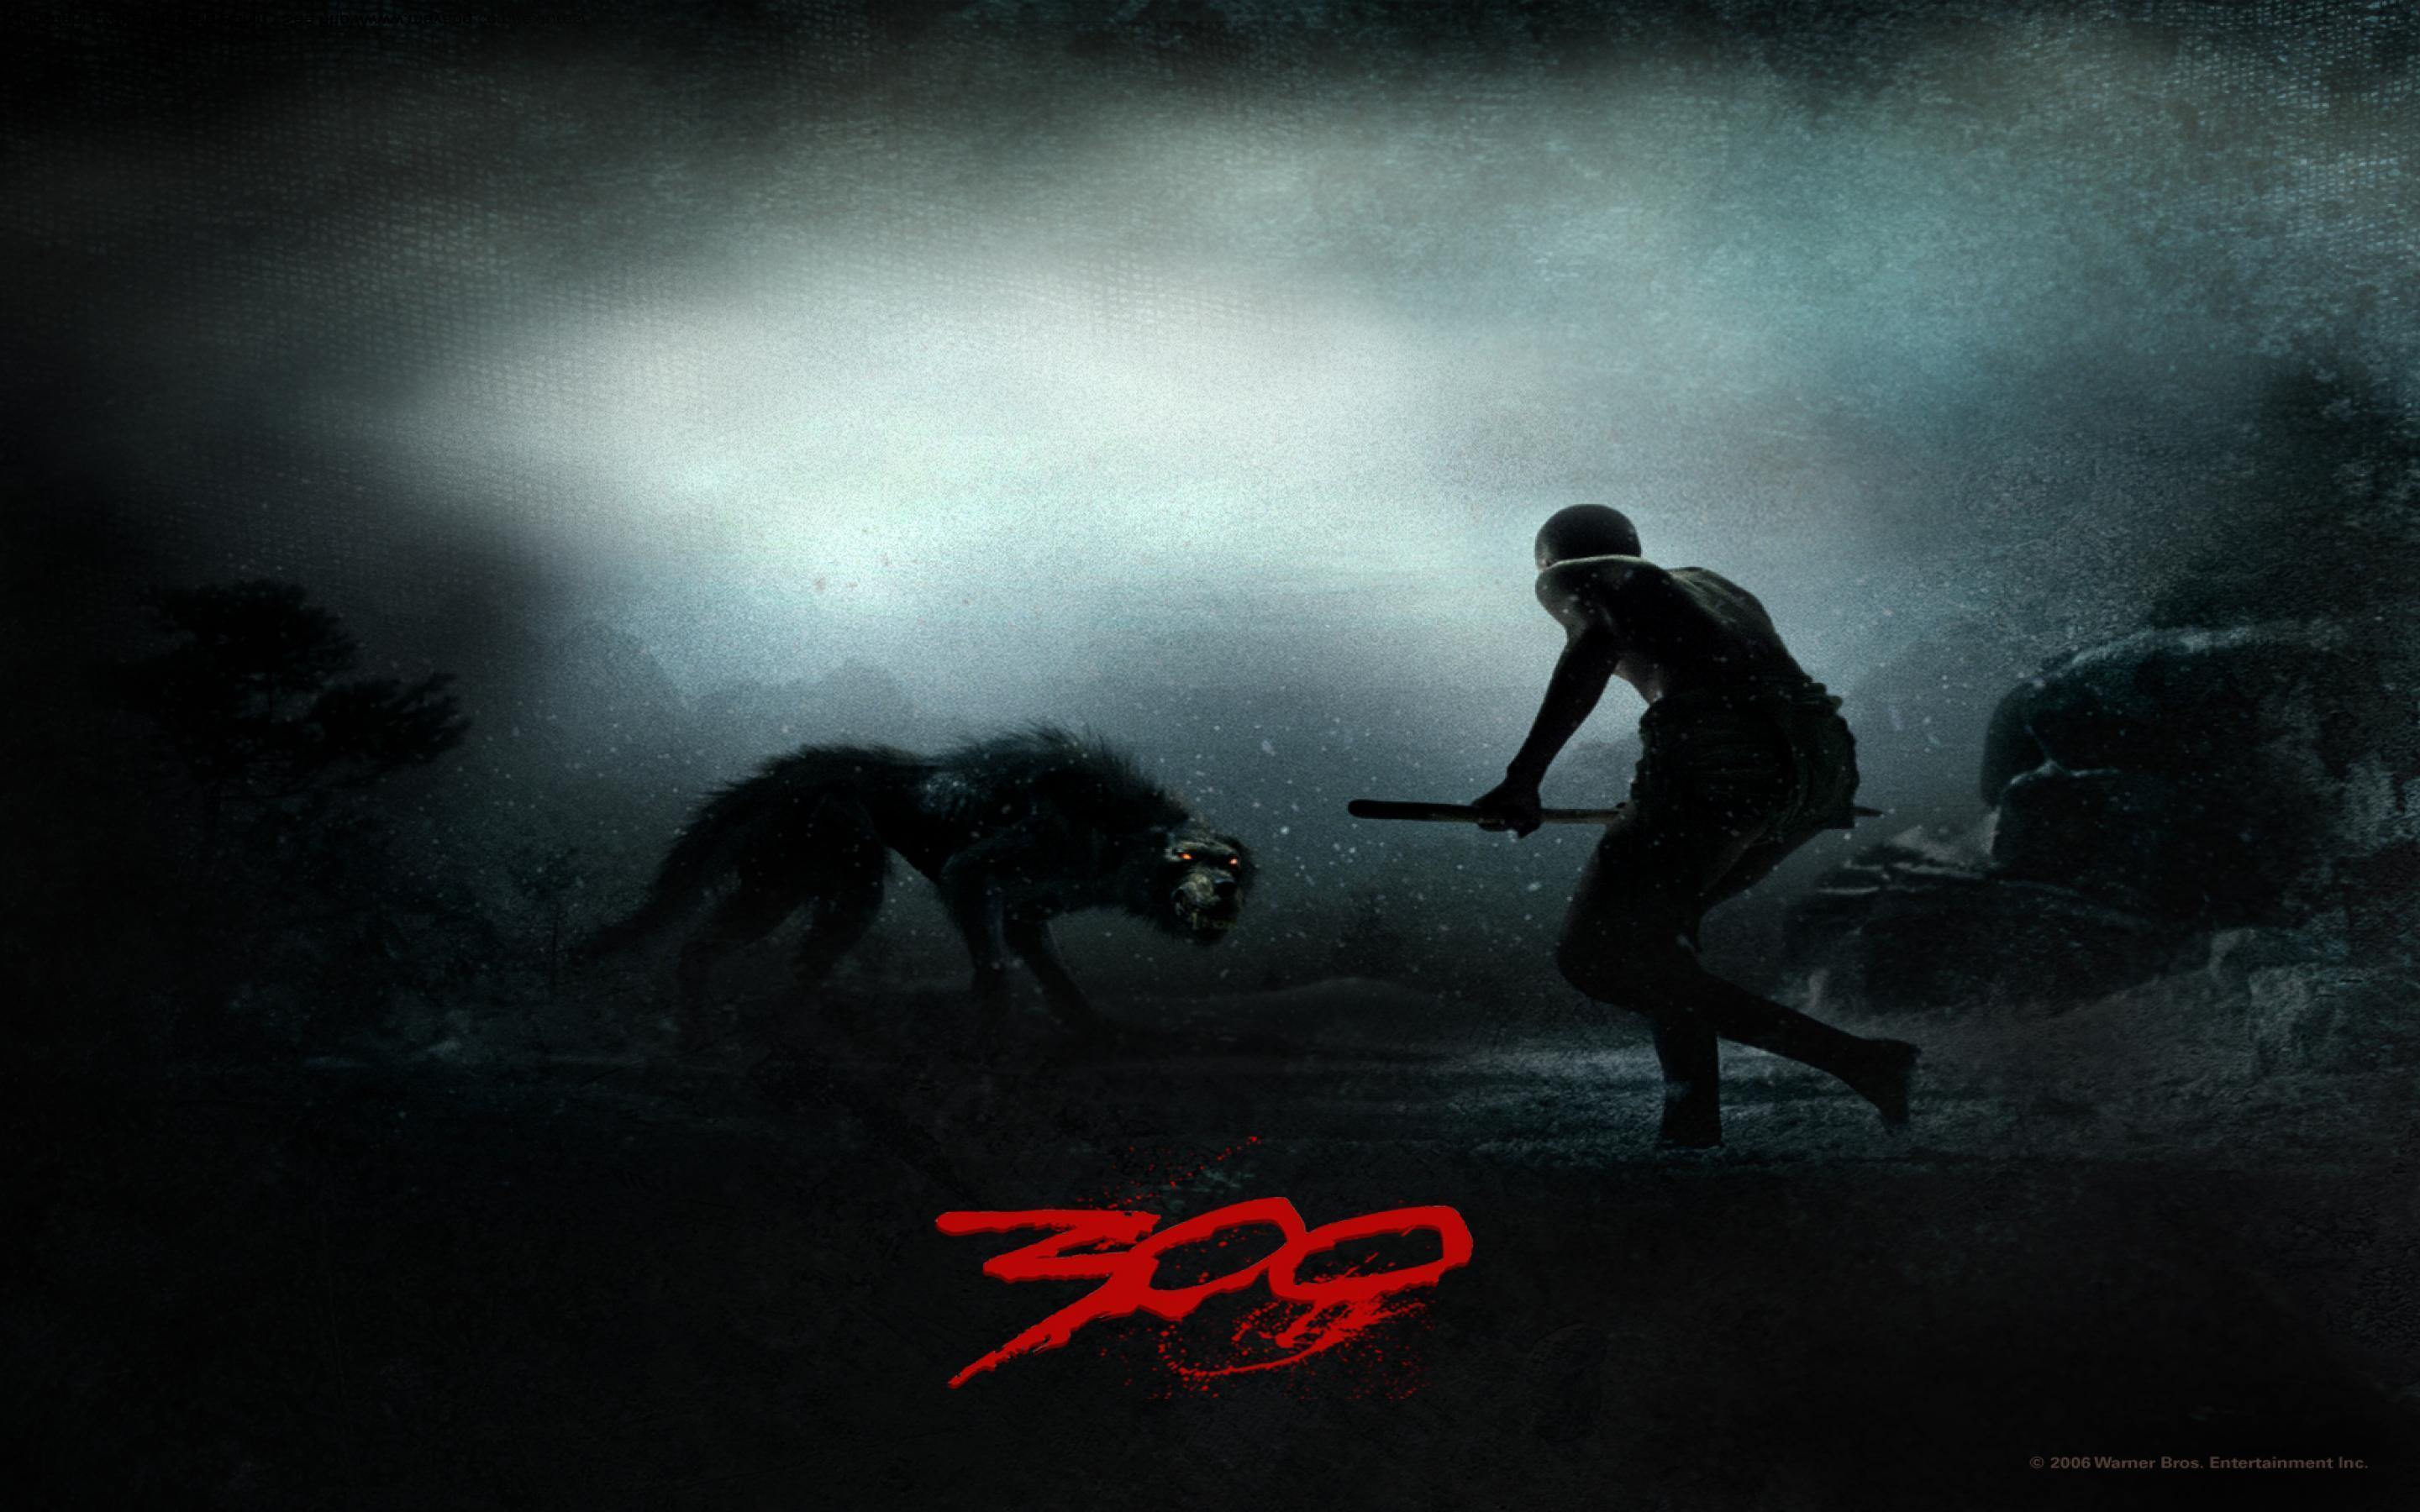 300 spartans wallpaper wallpapers - photo #20